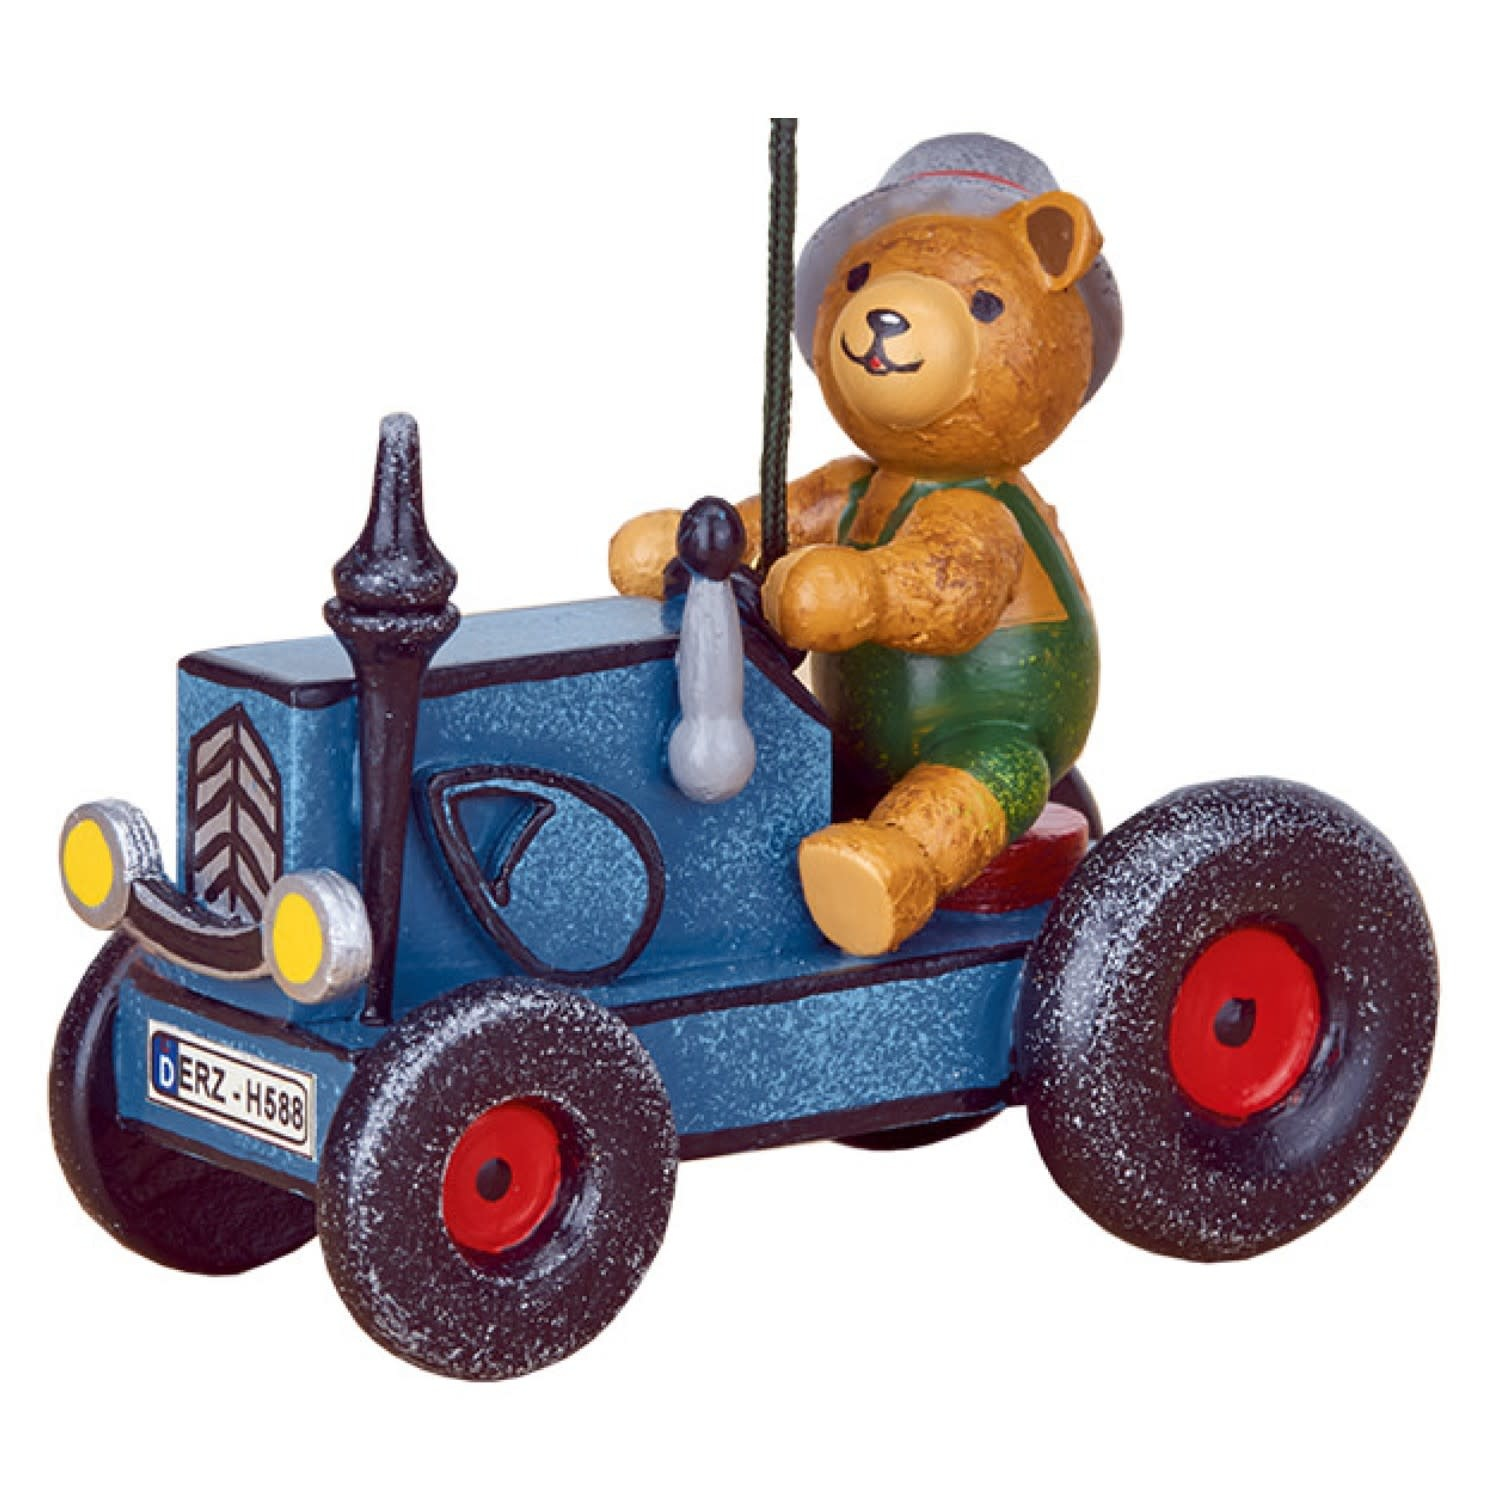 140h2006 Tractor with Teddy Ornament - 3 inches